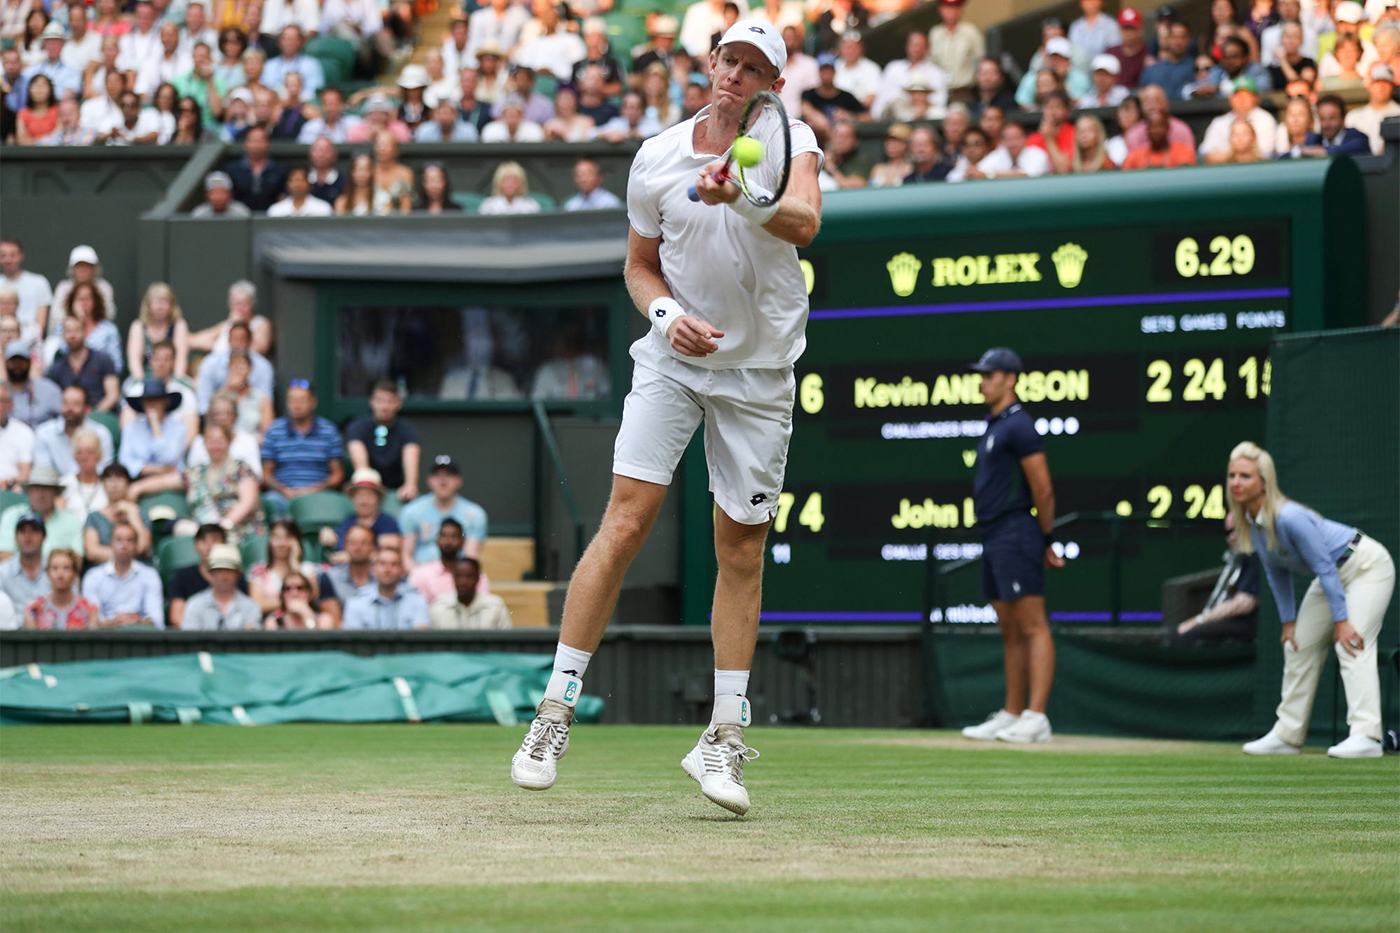 Kevin Anderson RSA v John Isner USA in the semi final of the Gentlemen's Singles on Centre Court. The Championships 2018. Held at The All England Lawn Tennis Club, Wimbledon. Day 11 Friday 13/07/2018. Credit: AELTC/Simon Bruty